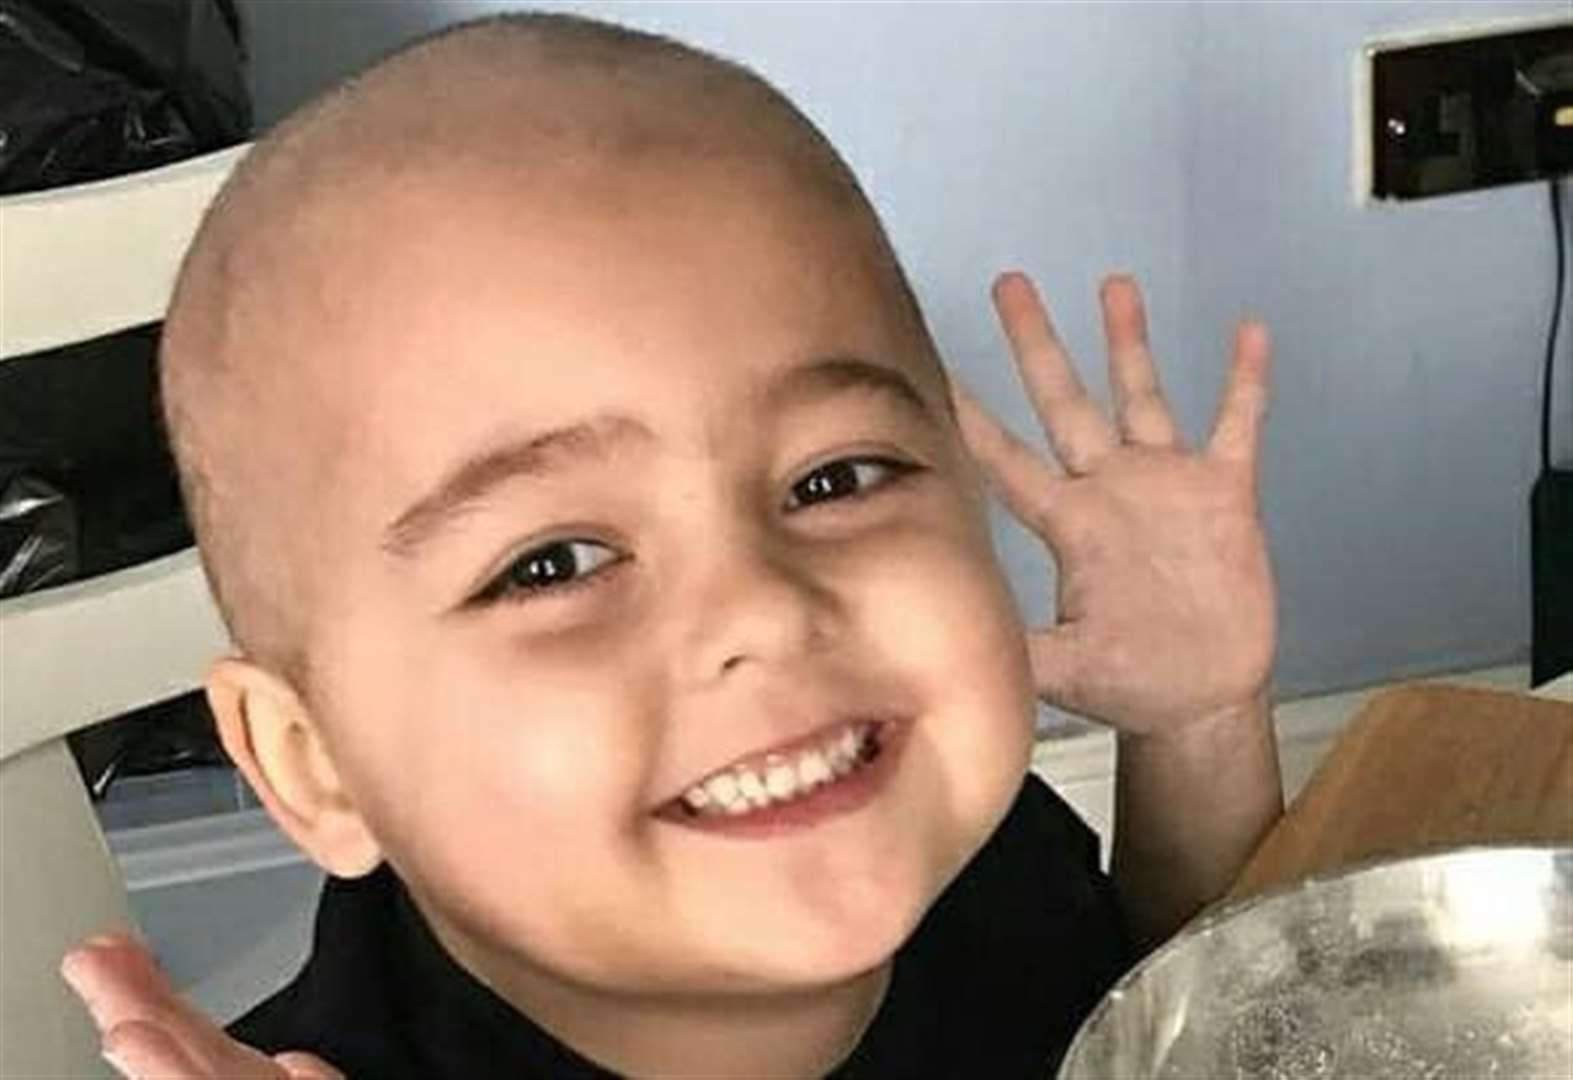 Boy, 8, with six months to live gets community backing